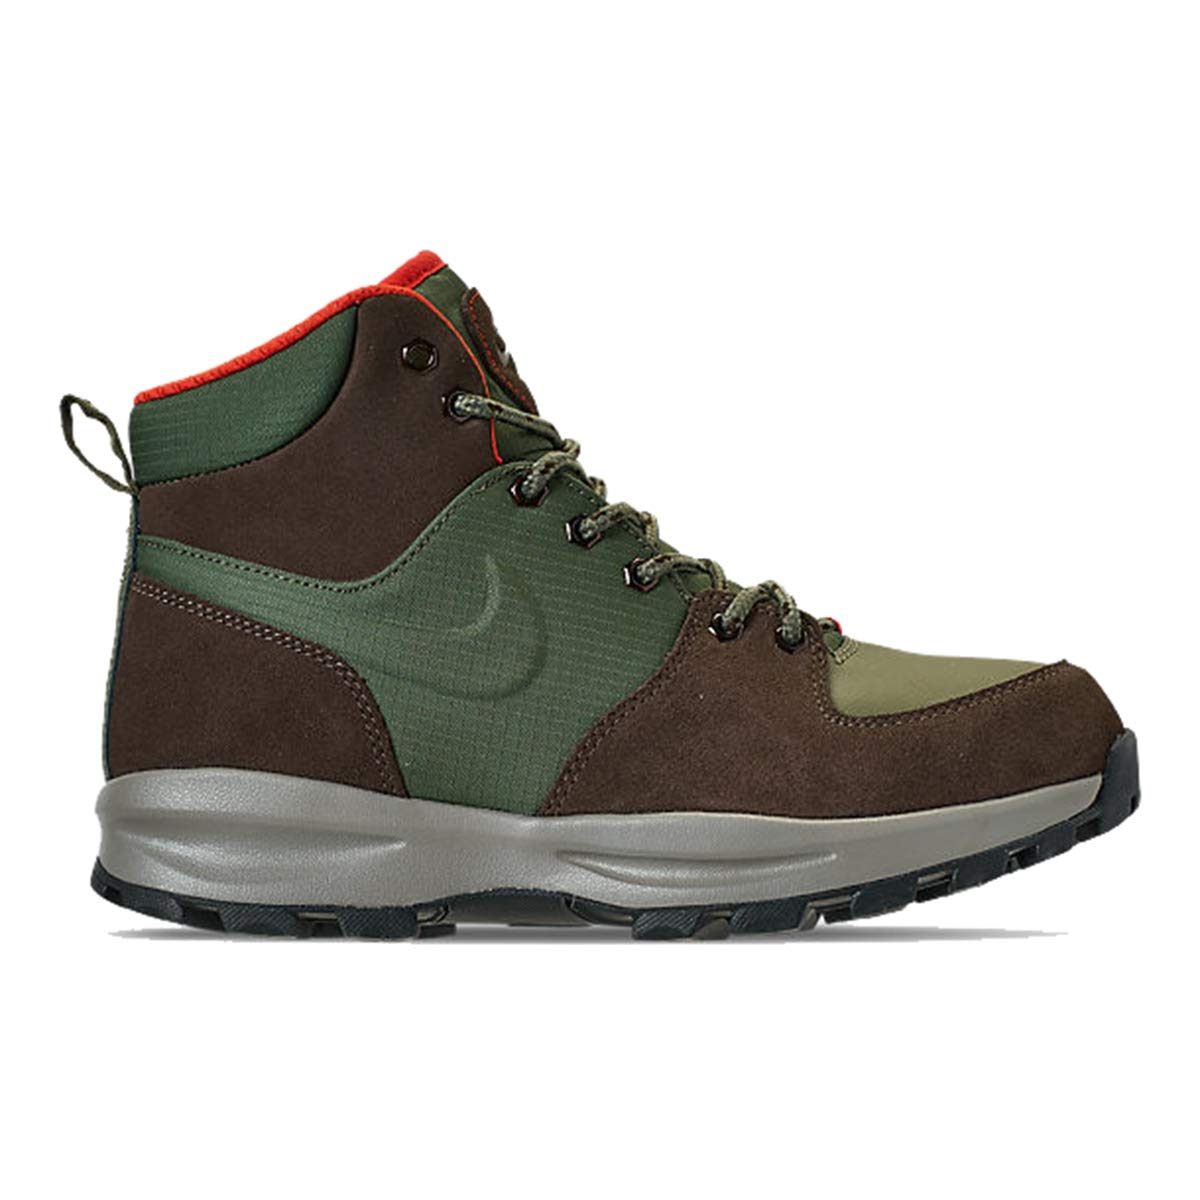 buy popular b1317 49232 Galleon - NIKE Mens Air Manoa Boots Army Olive Baroque Brown BQ3380-300  Size 8